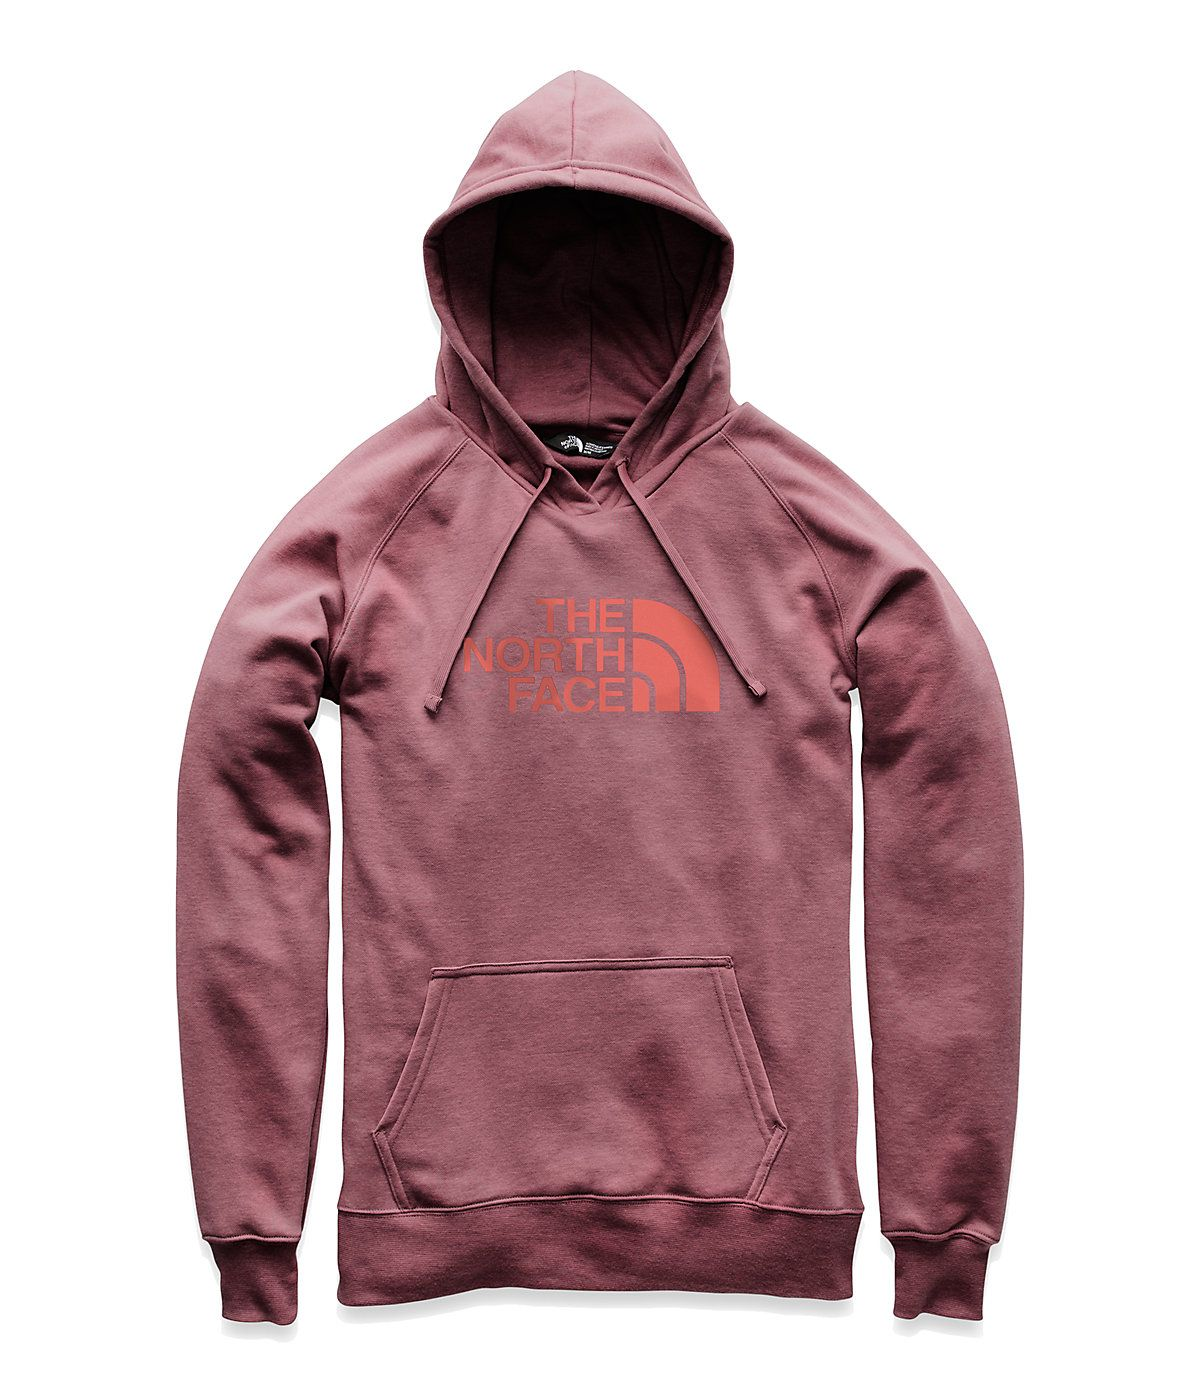 bd878f103 Women's half dome pullover hoodie in 2019 | Products | Pullover ...